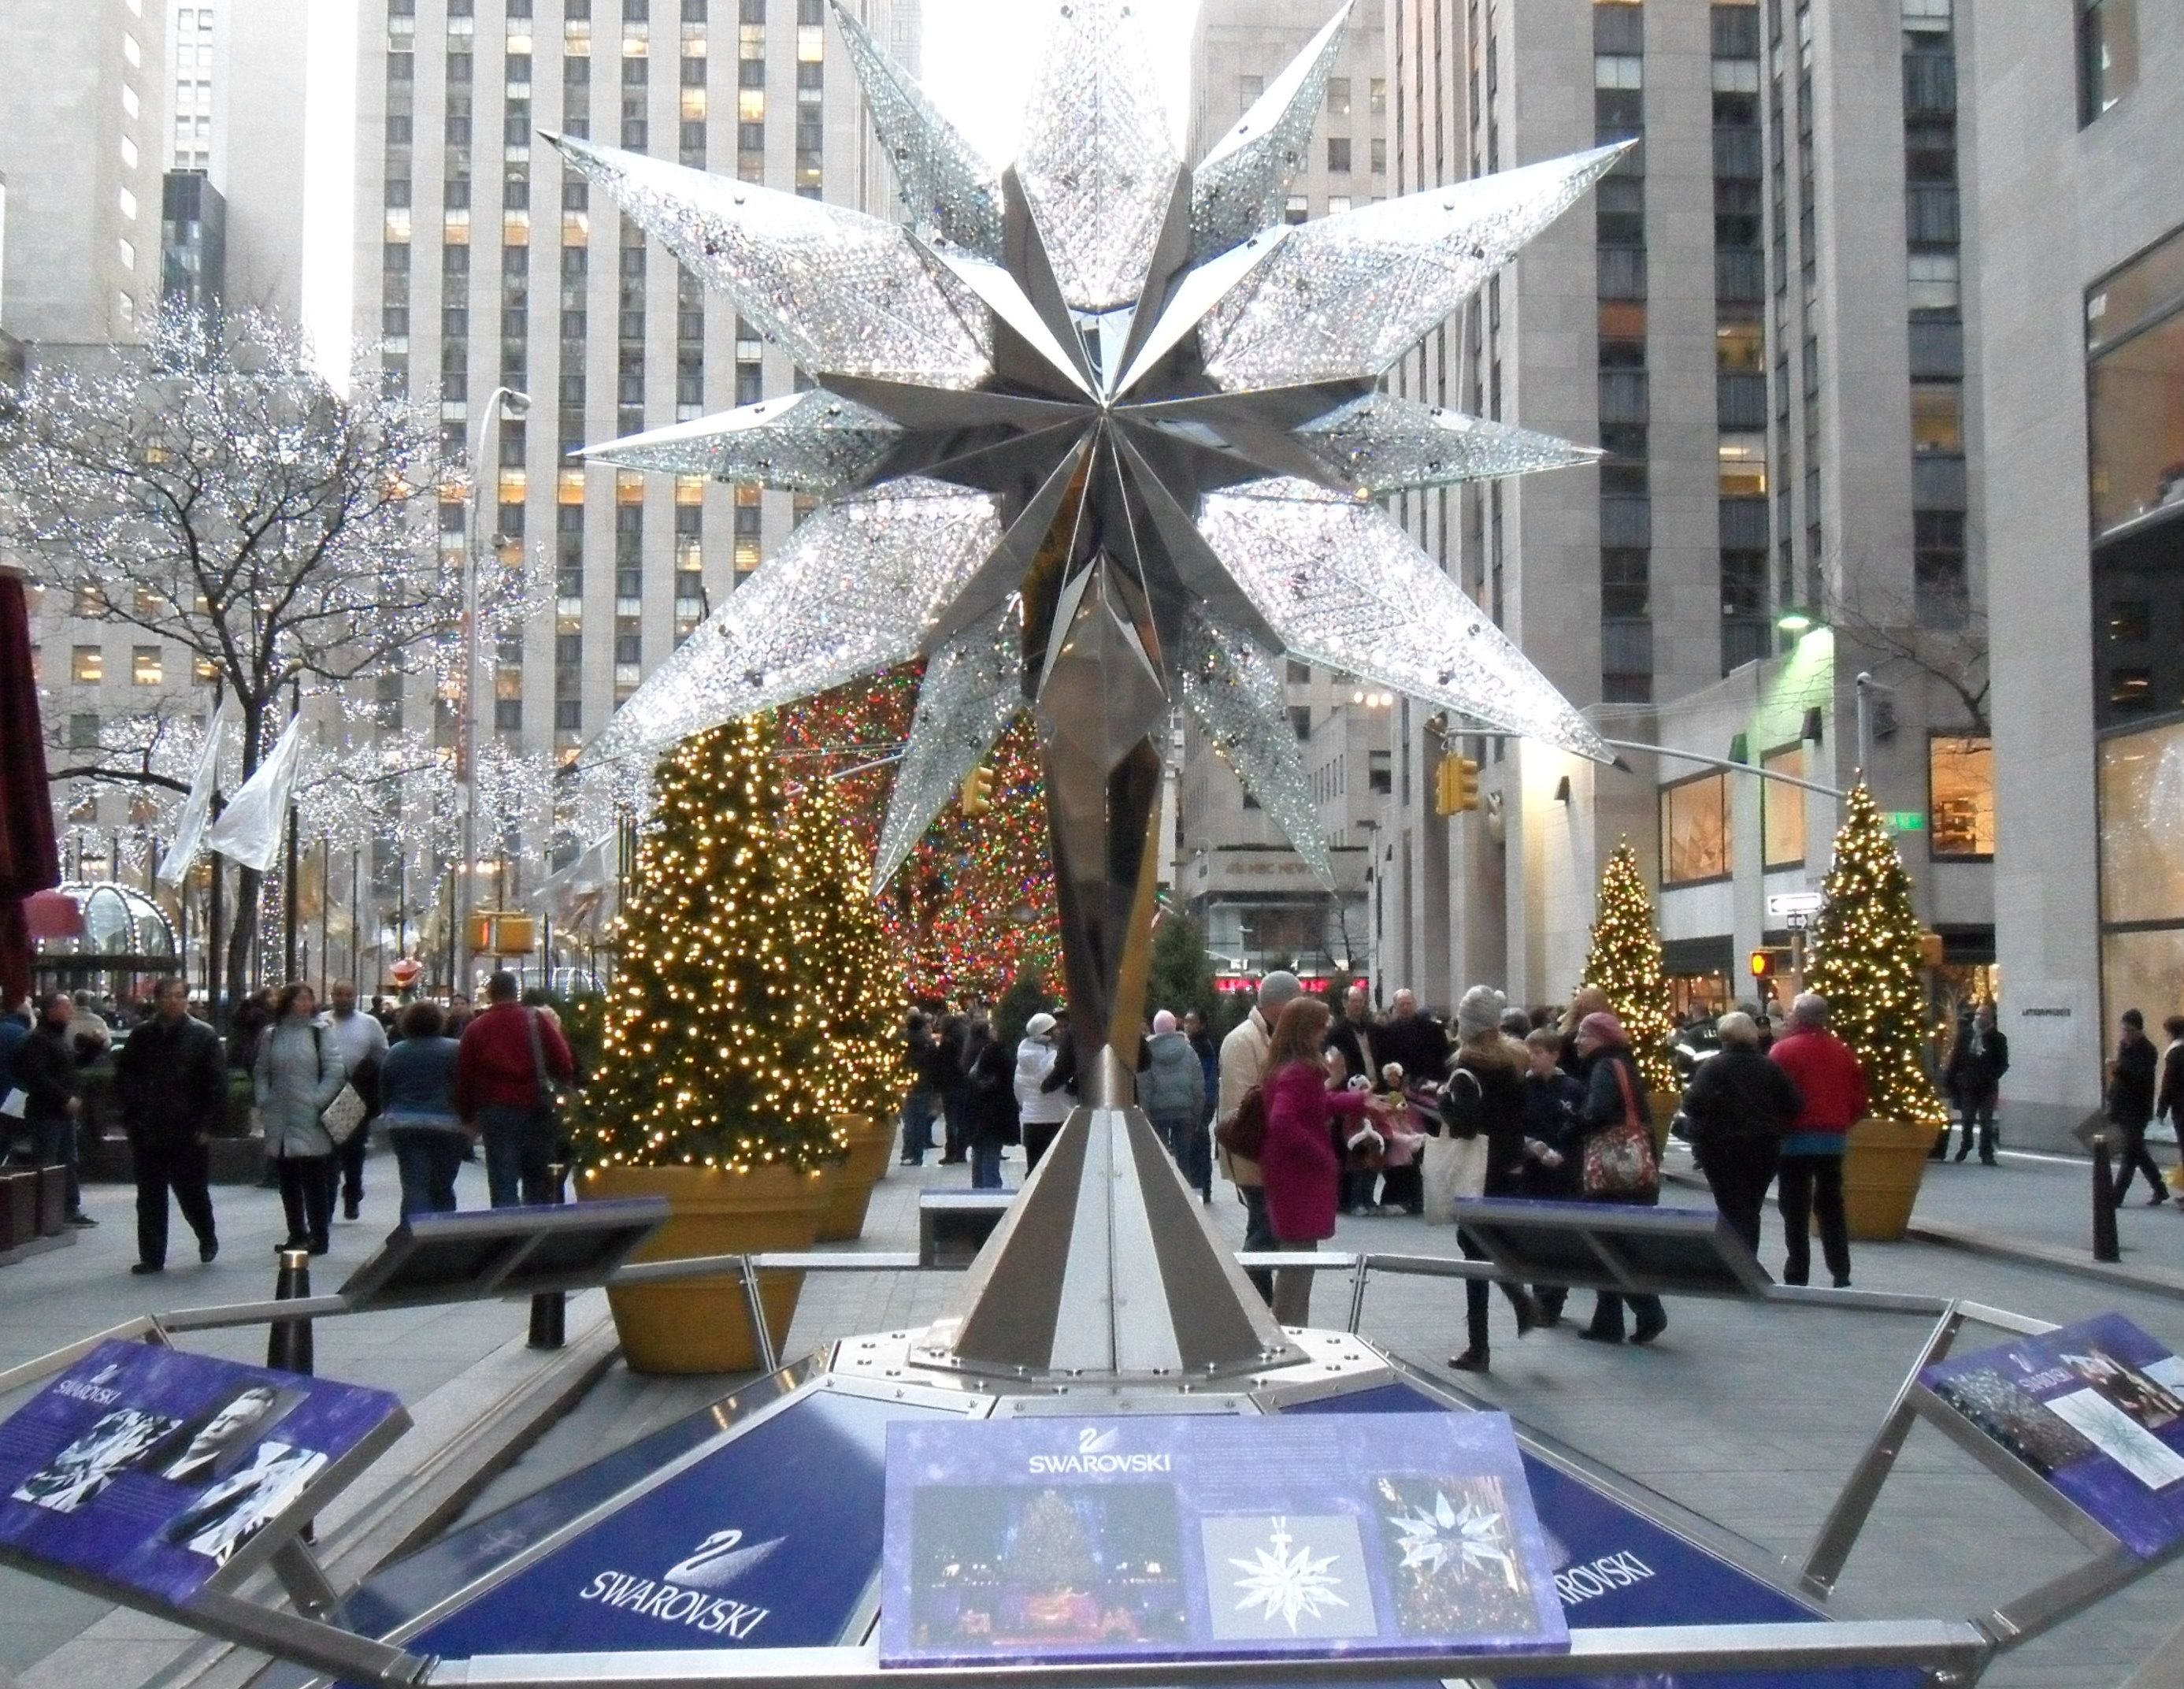 Swarovski Crystal display at Rockefeller Center in New York City